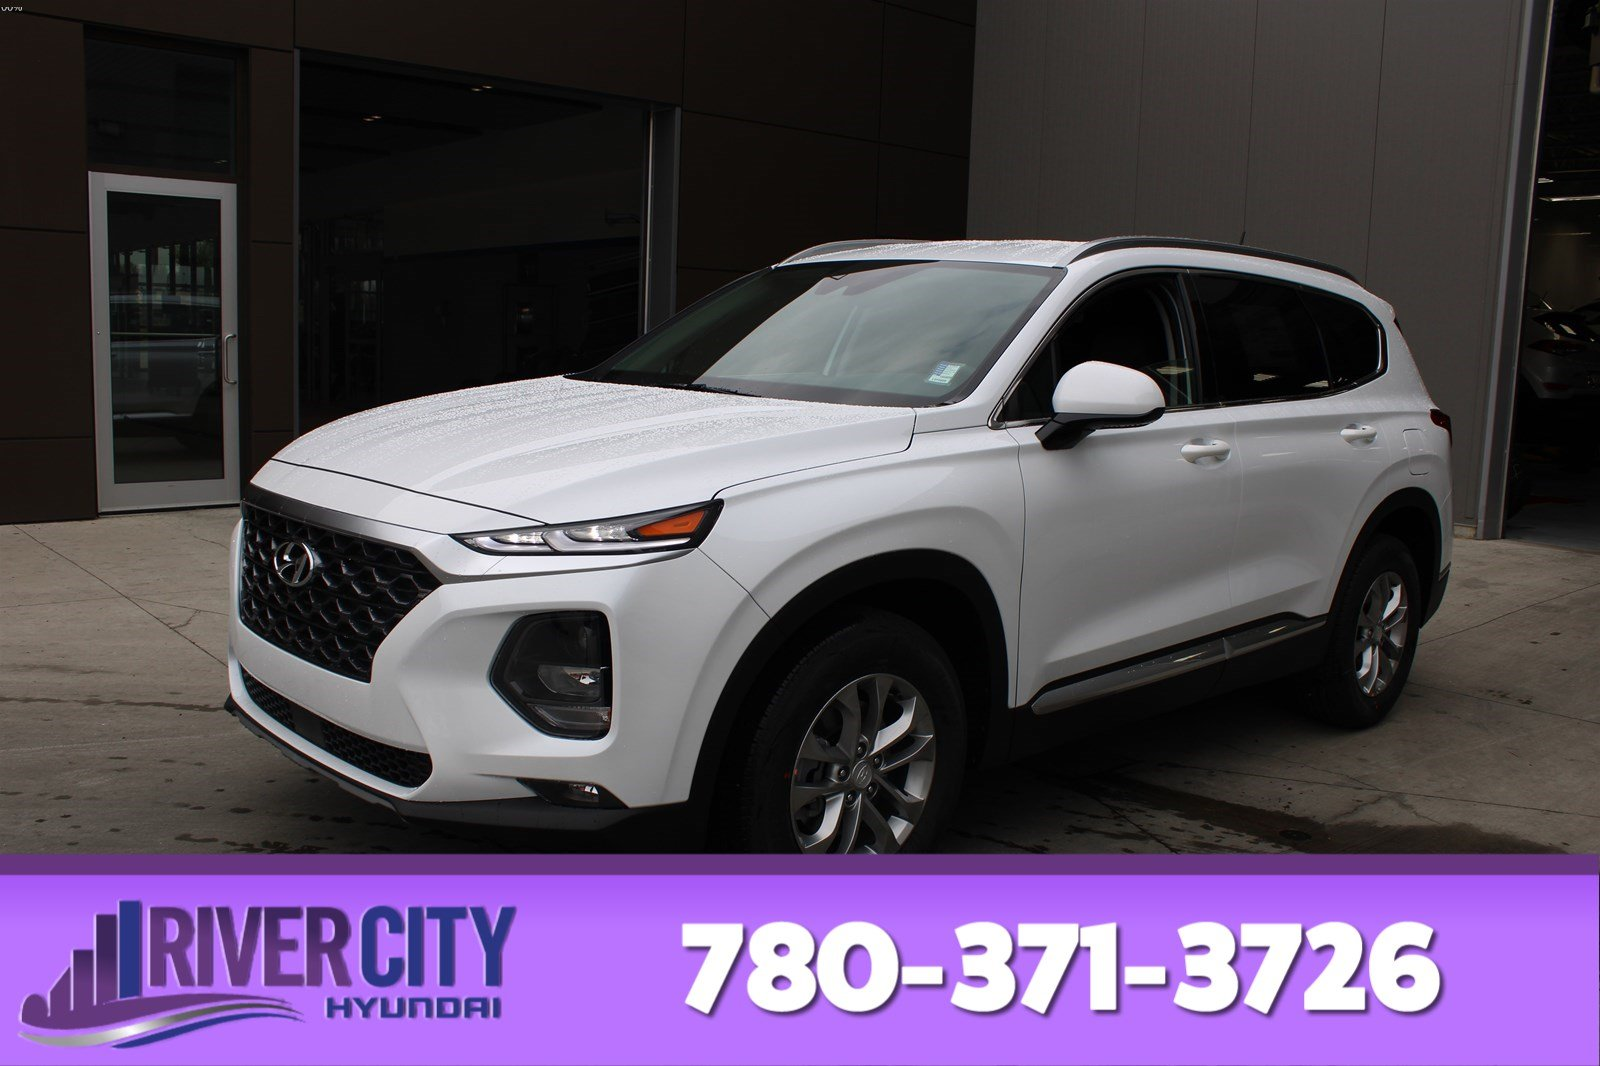 New 2020 Hyundai Santa Fe ESSETIAL AWD SAFETY ADAPT CRUISE CONTROL-STOP & GO,FORWARD COLLISION AVOIDANCE ,ANDROID AUTO/APPLE C